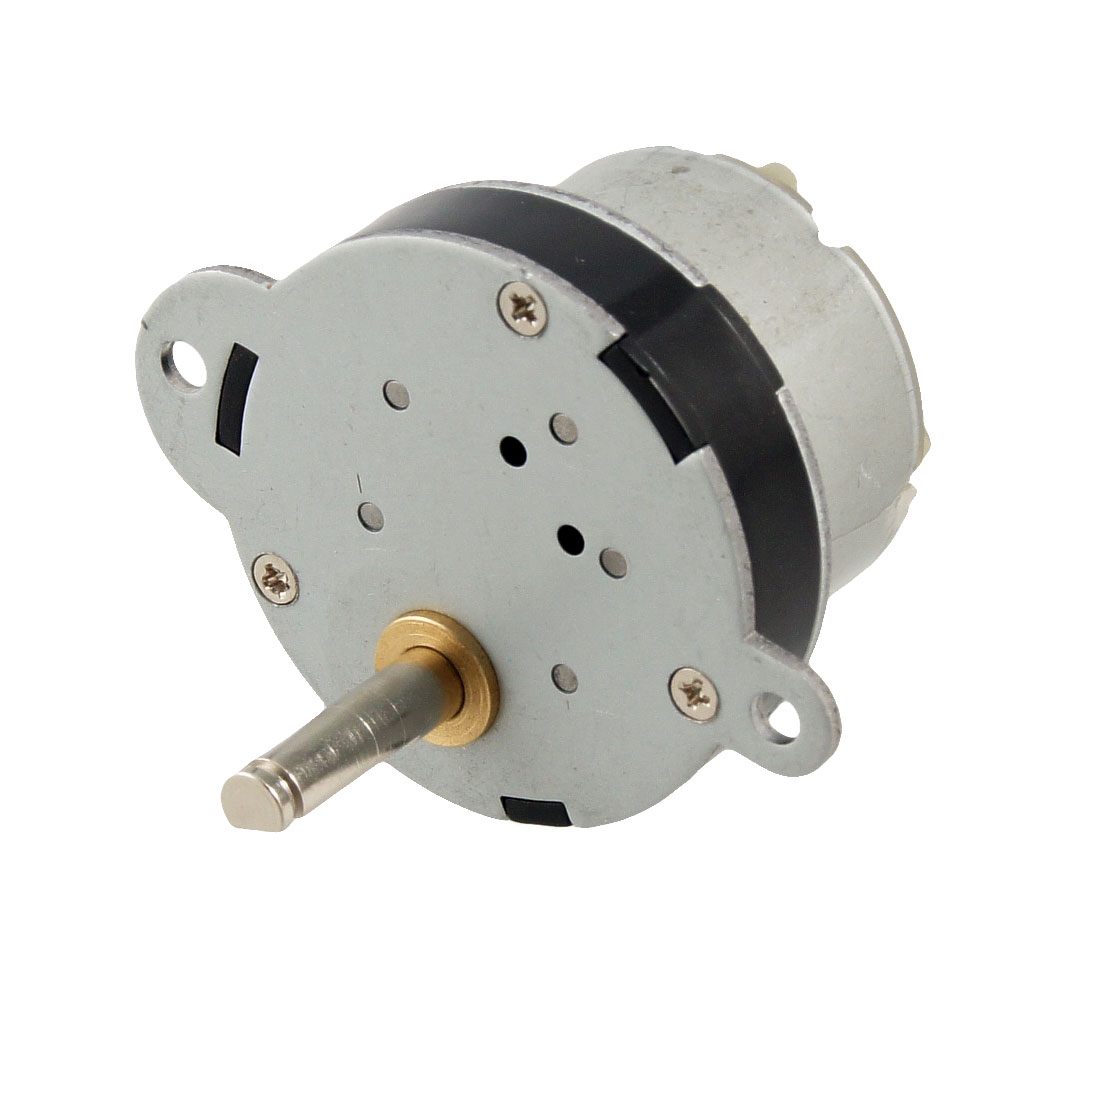 32mm-Dia-Permanent-Magnetic-Planet-Gear-Box-Motor-40GB-3-RPM-45MA-6V-DC